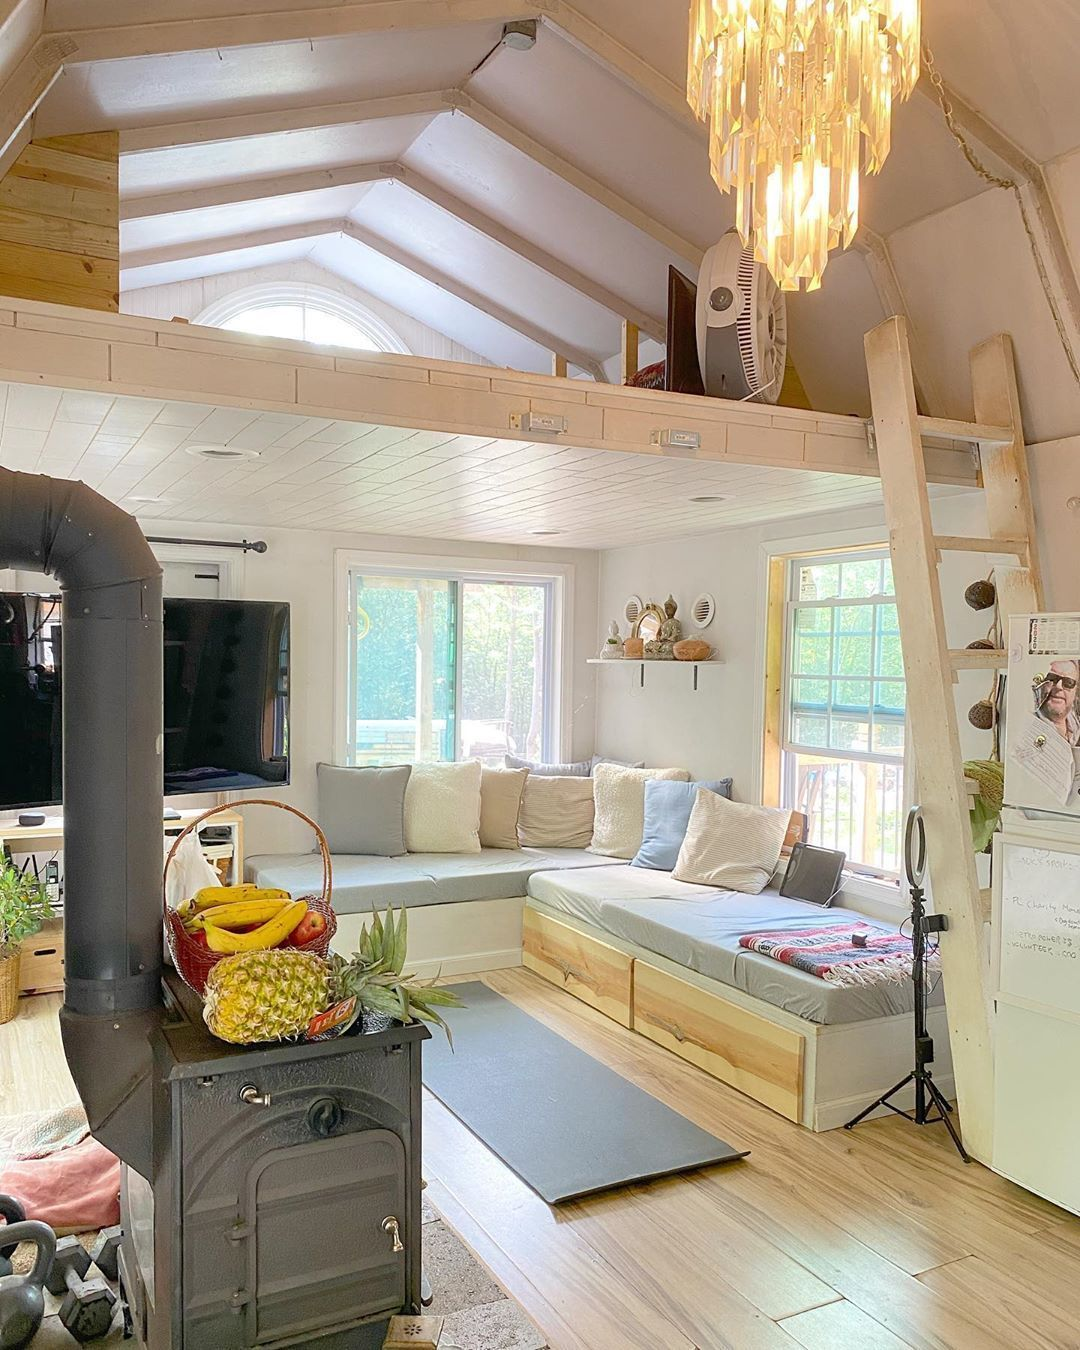 People Are Turning Home Depot Tuff Sheds Into Affordable Two Story Tiny Homes Tiny House Loft Best Tiny House Tiny House Living